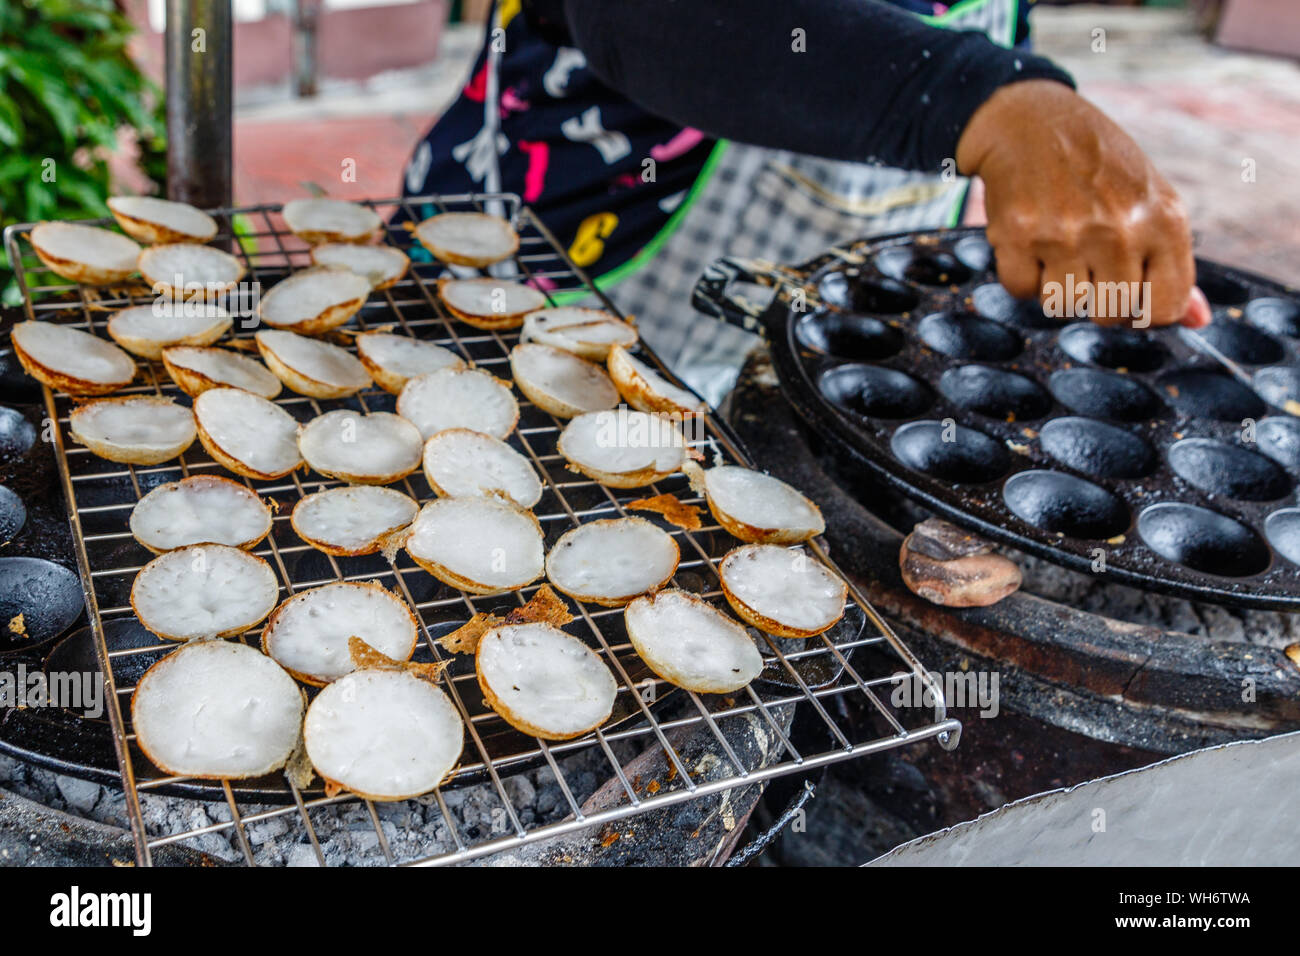 Khanom khrok or coconut-rice pancakes, Thai traditional dessert with coconut milk made on a special cast-iron pan. National cuisine of Thailand. Stock Photo